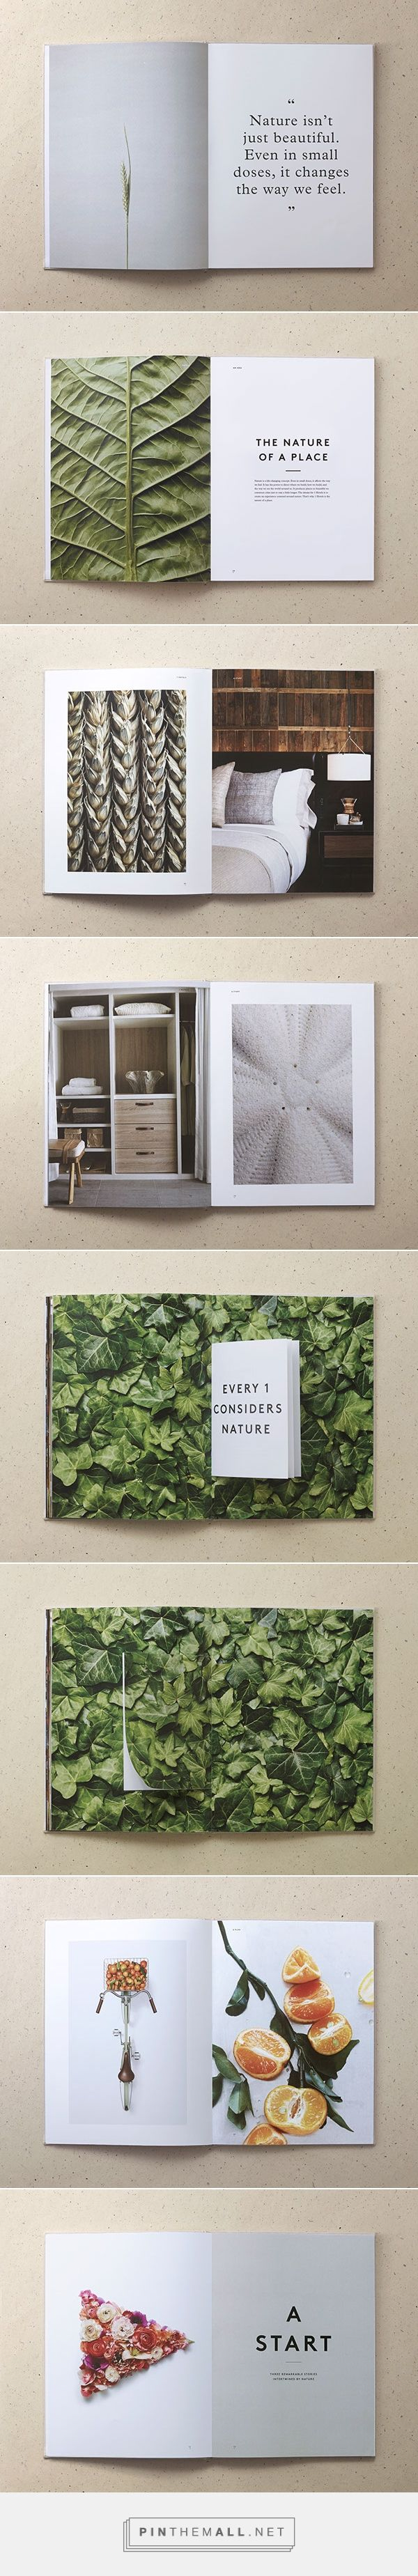 Love the big bold photos + texture ///// 1 Hotels by Jules Tardy & Christian Cervantes #print #design #layout